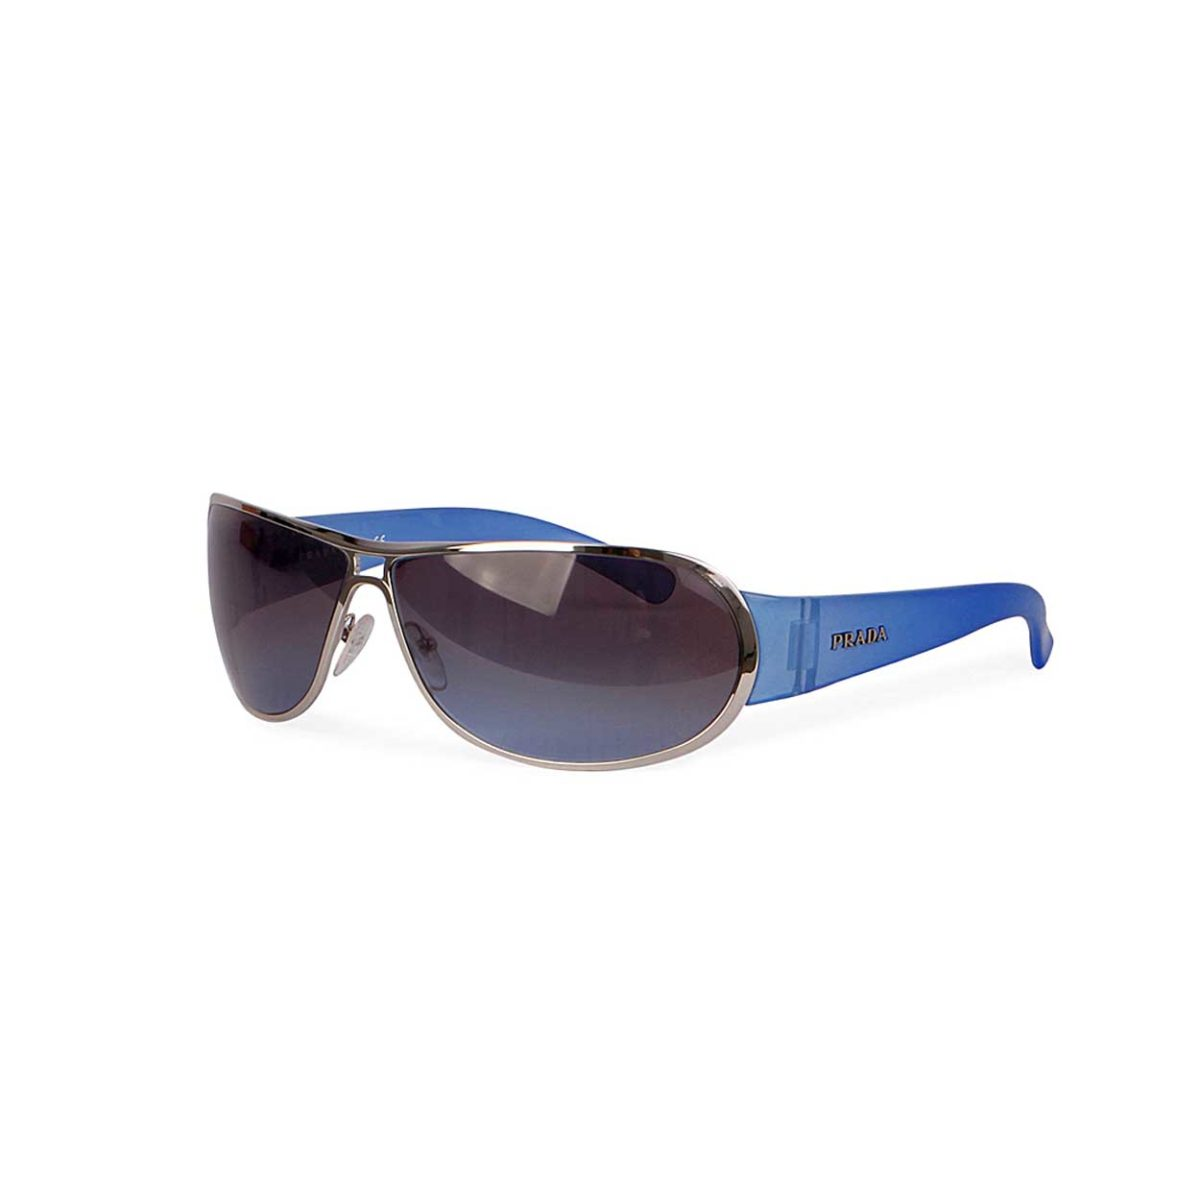 aff817966d ... top quality prada sunglasses spr 70g blue new 92faf 3527e